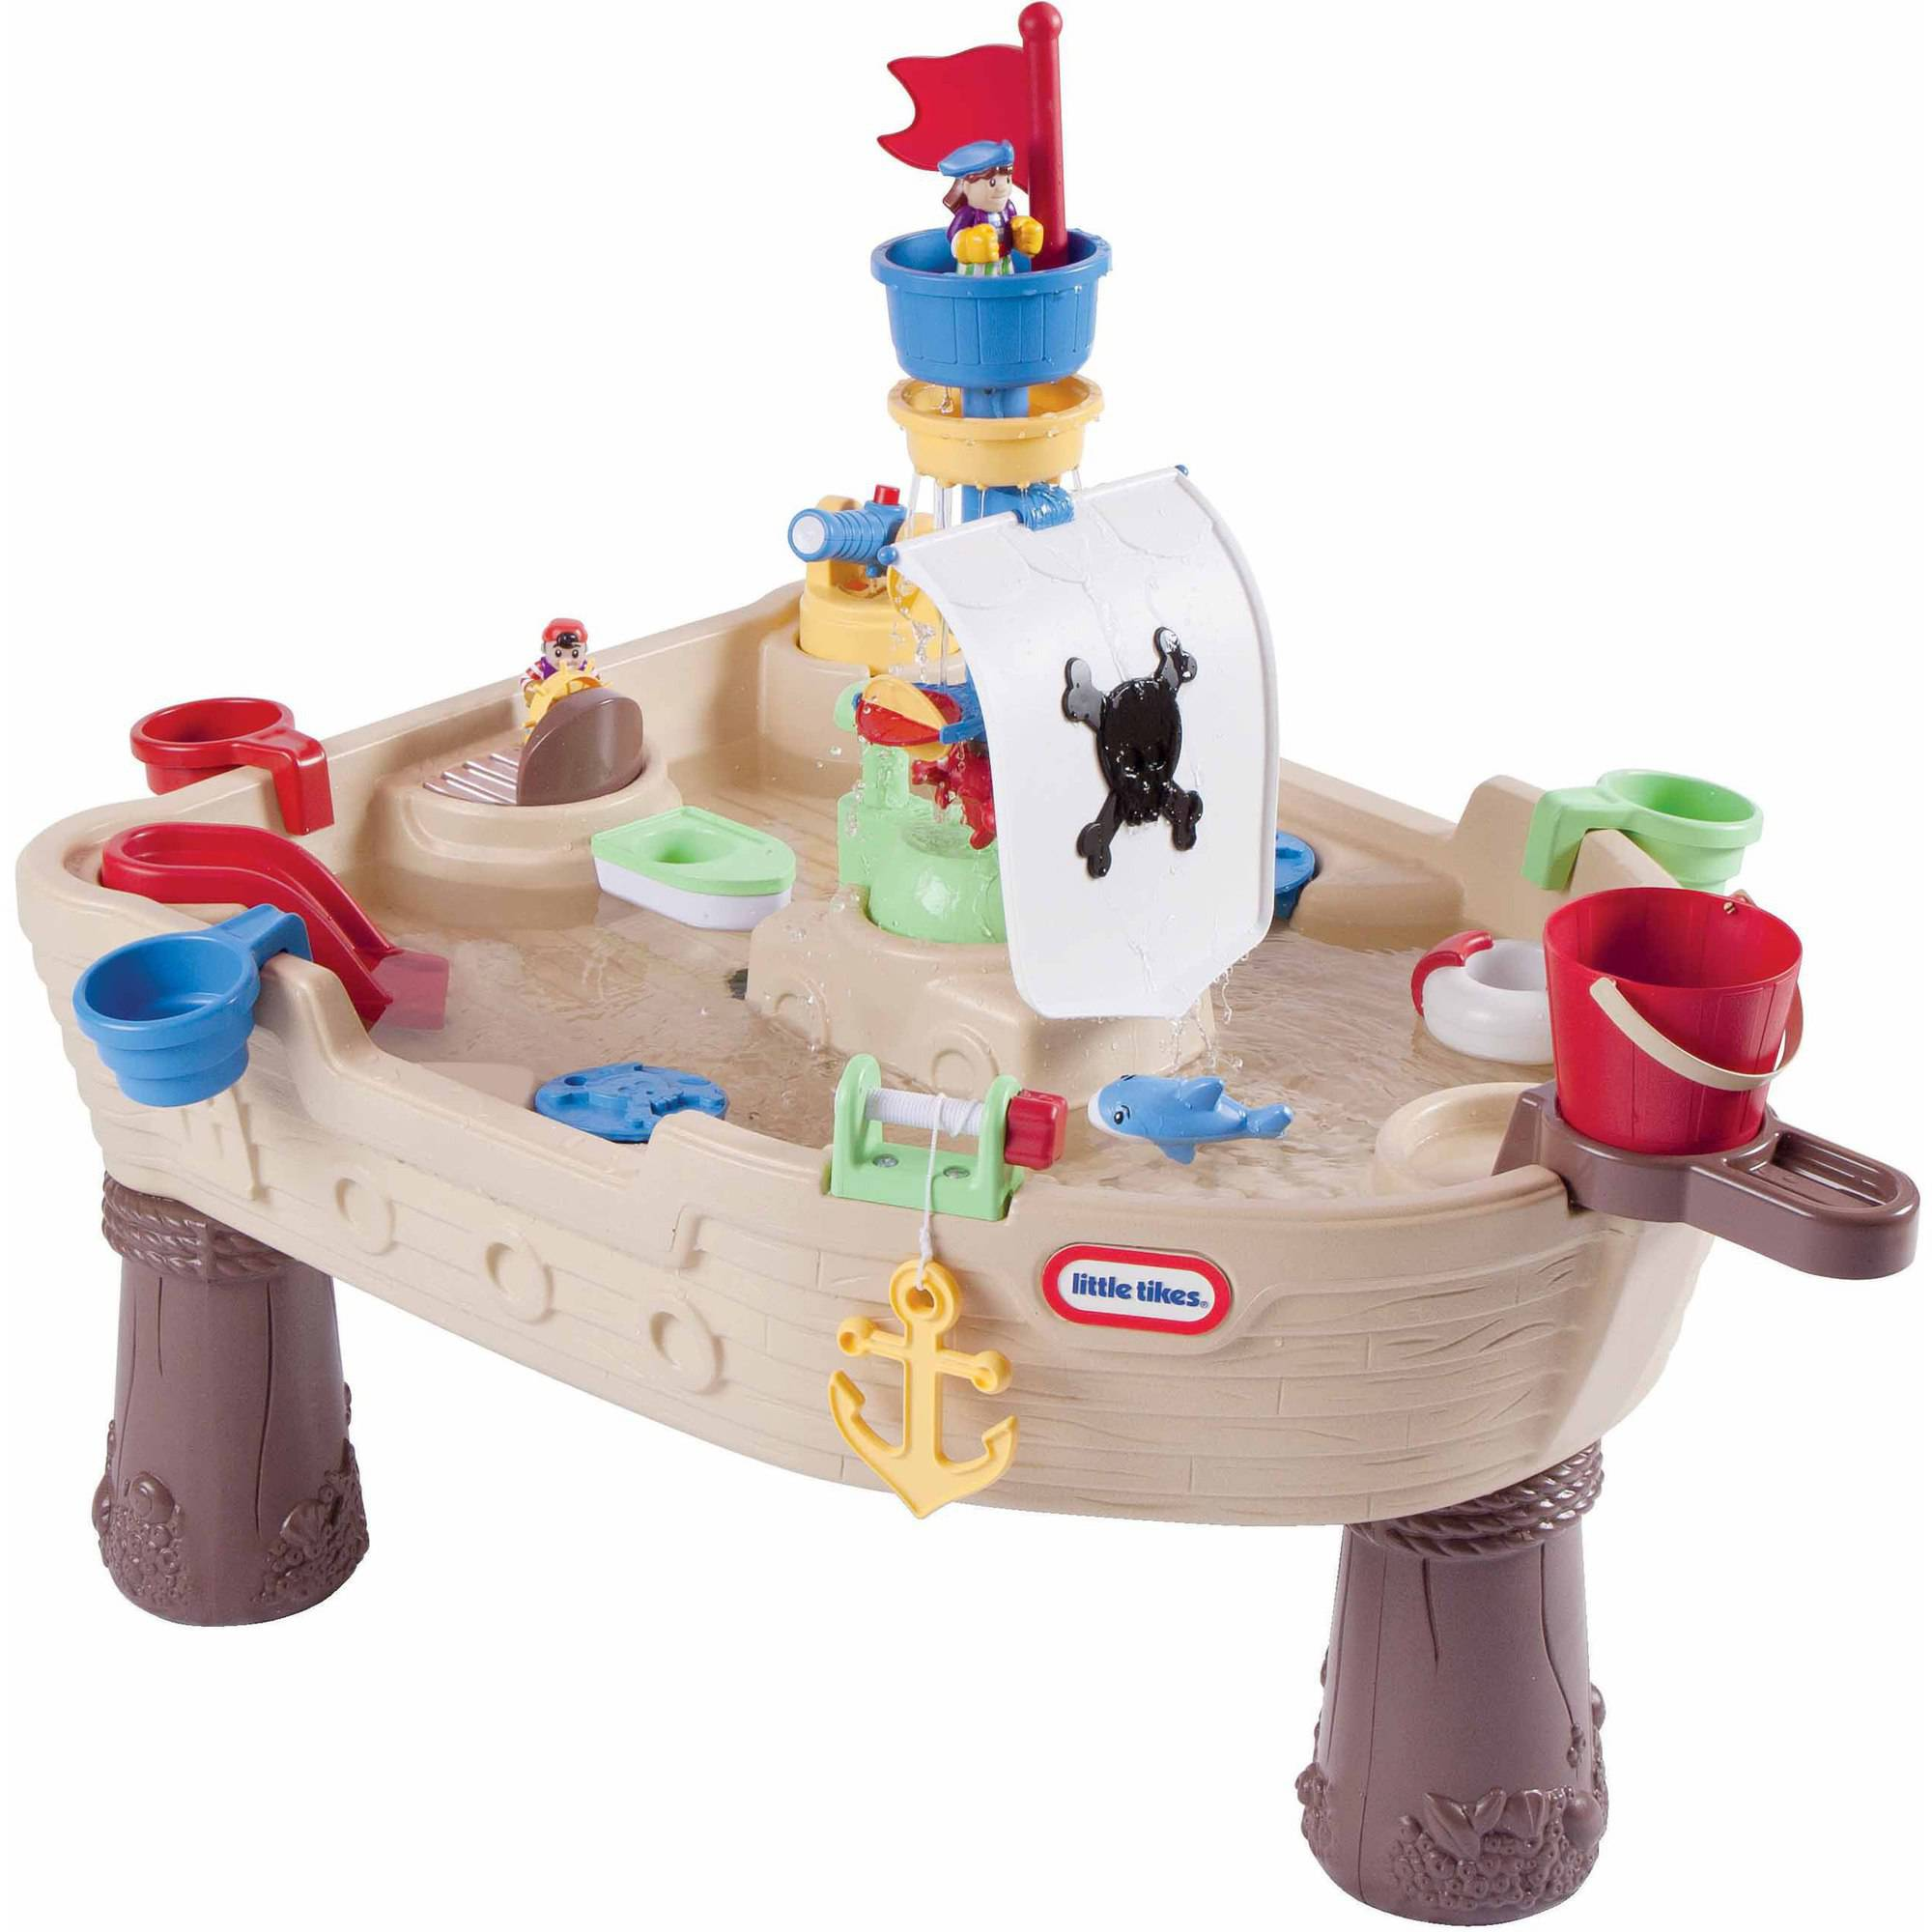 Little Tikes Toddler Bed | Little Tikes Pirate Bed | Pirate Ship Toddler Bed Little Tikes